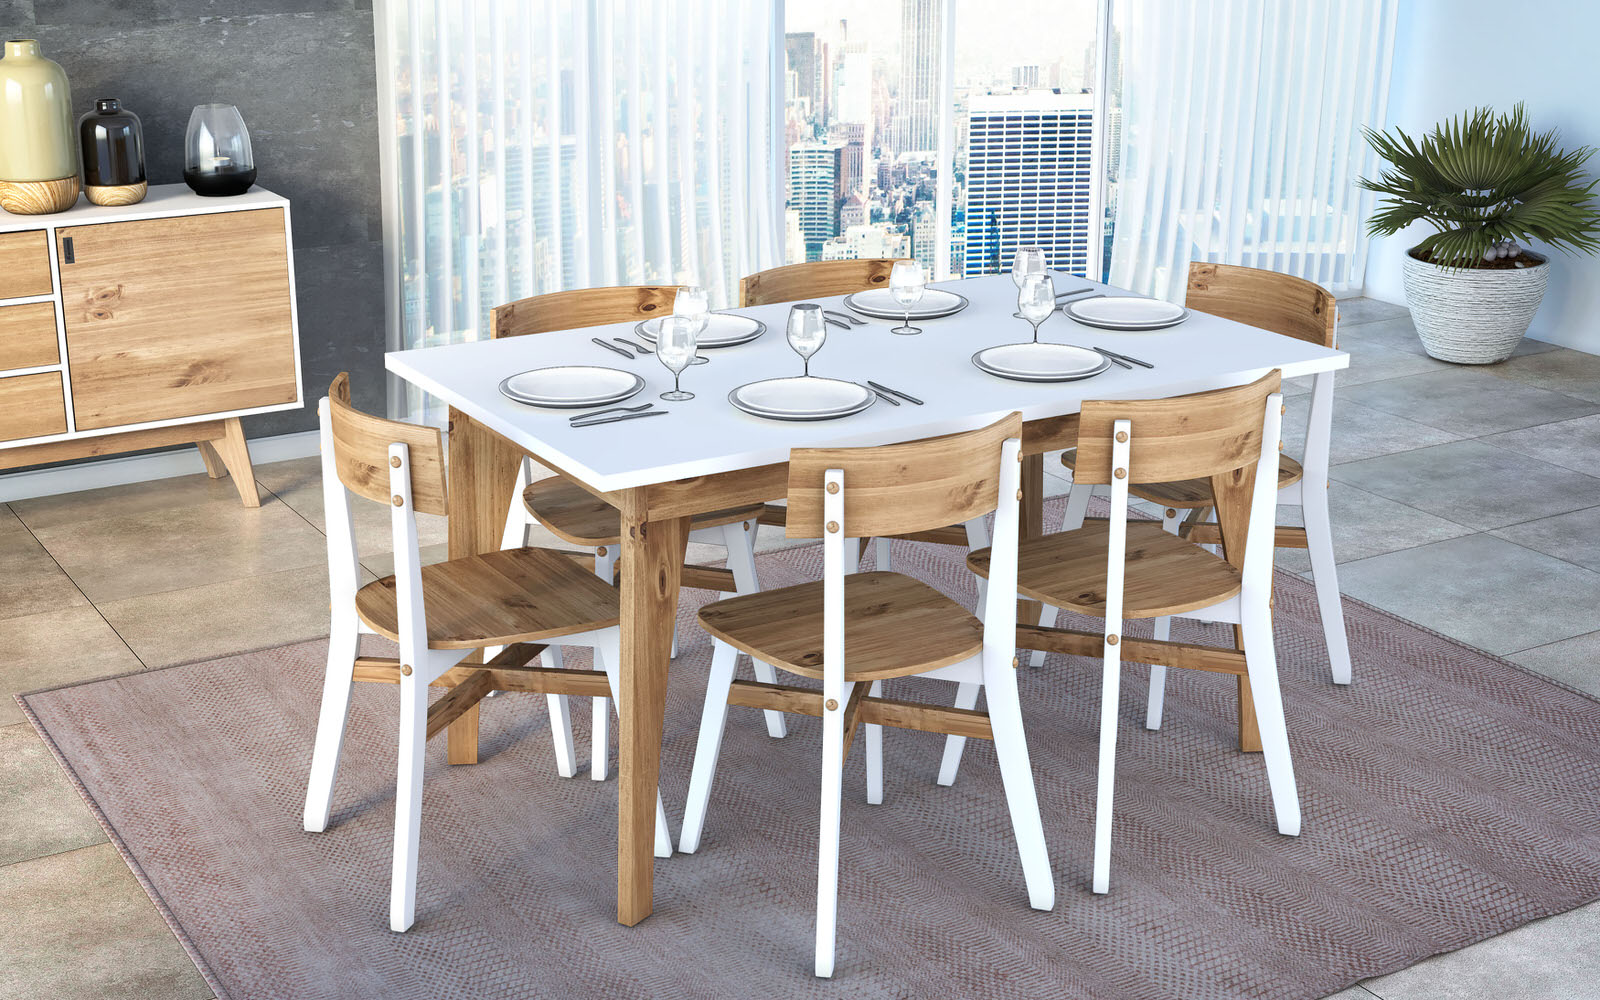 Rustic Mid Century Modern Jackie 6 Seating White U0026 Natural Wood Dining Table  By Manhattan Comfort